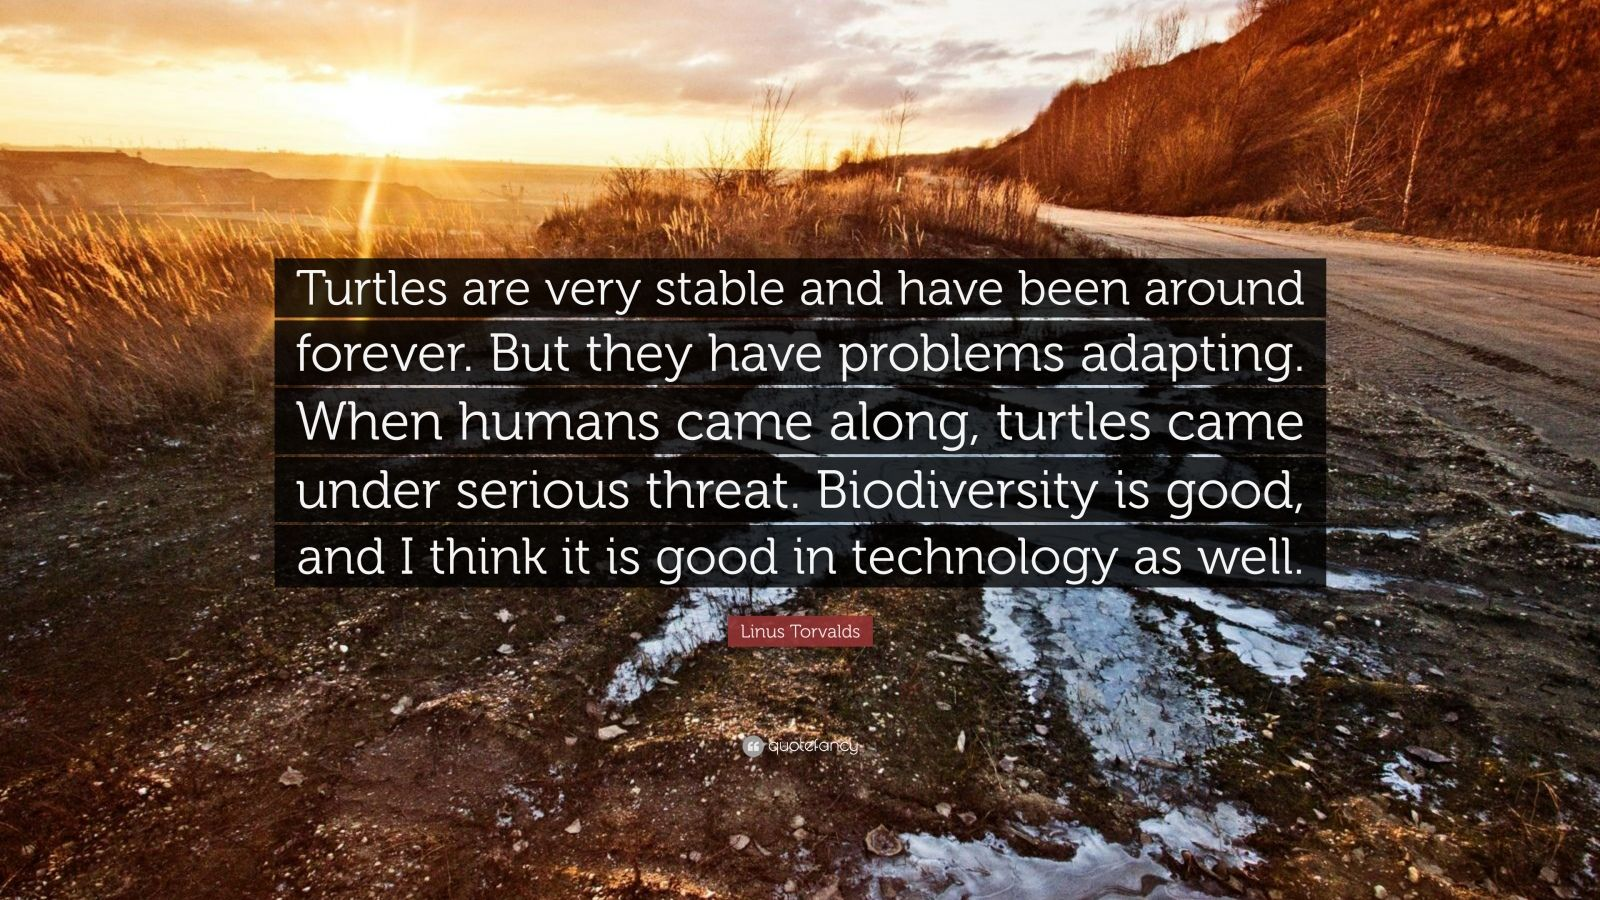 """Linus Torvalds Quote: """"Turtles are very stable and have been around forever. But they have problems adapting. When humans came along, turtles came under serious threat. Biodiversity is good, and I think it is good in technology as well."""""""